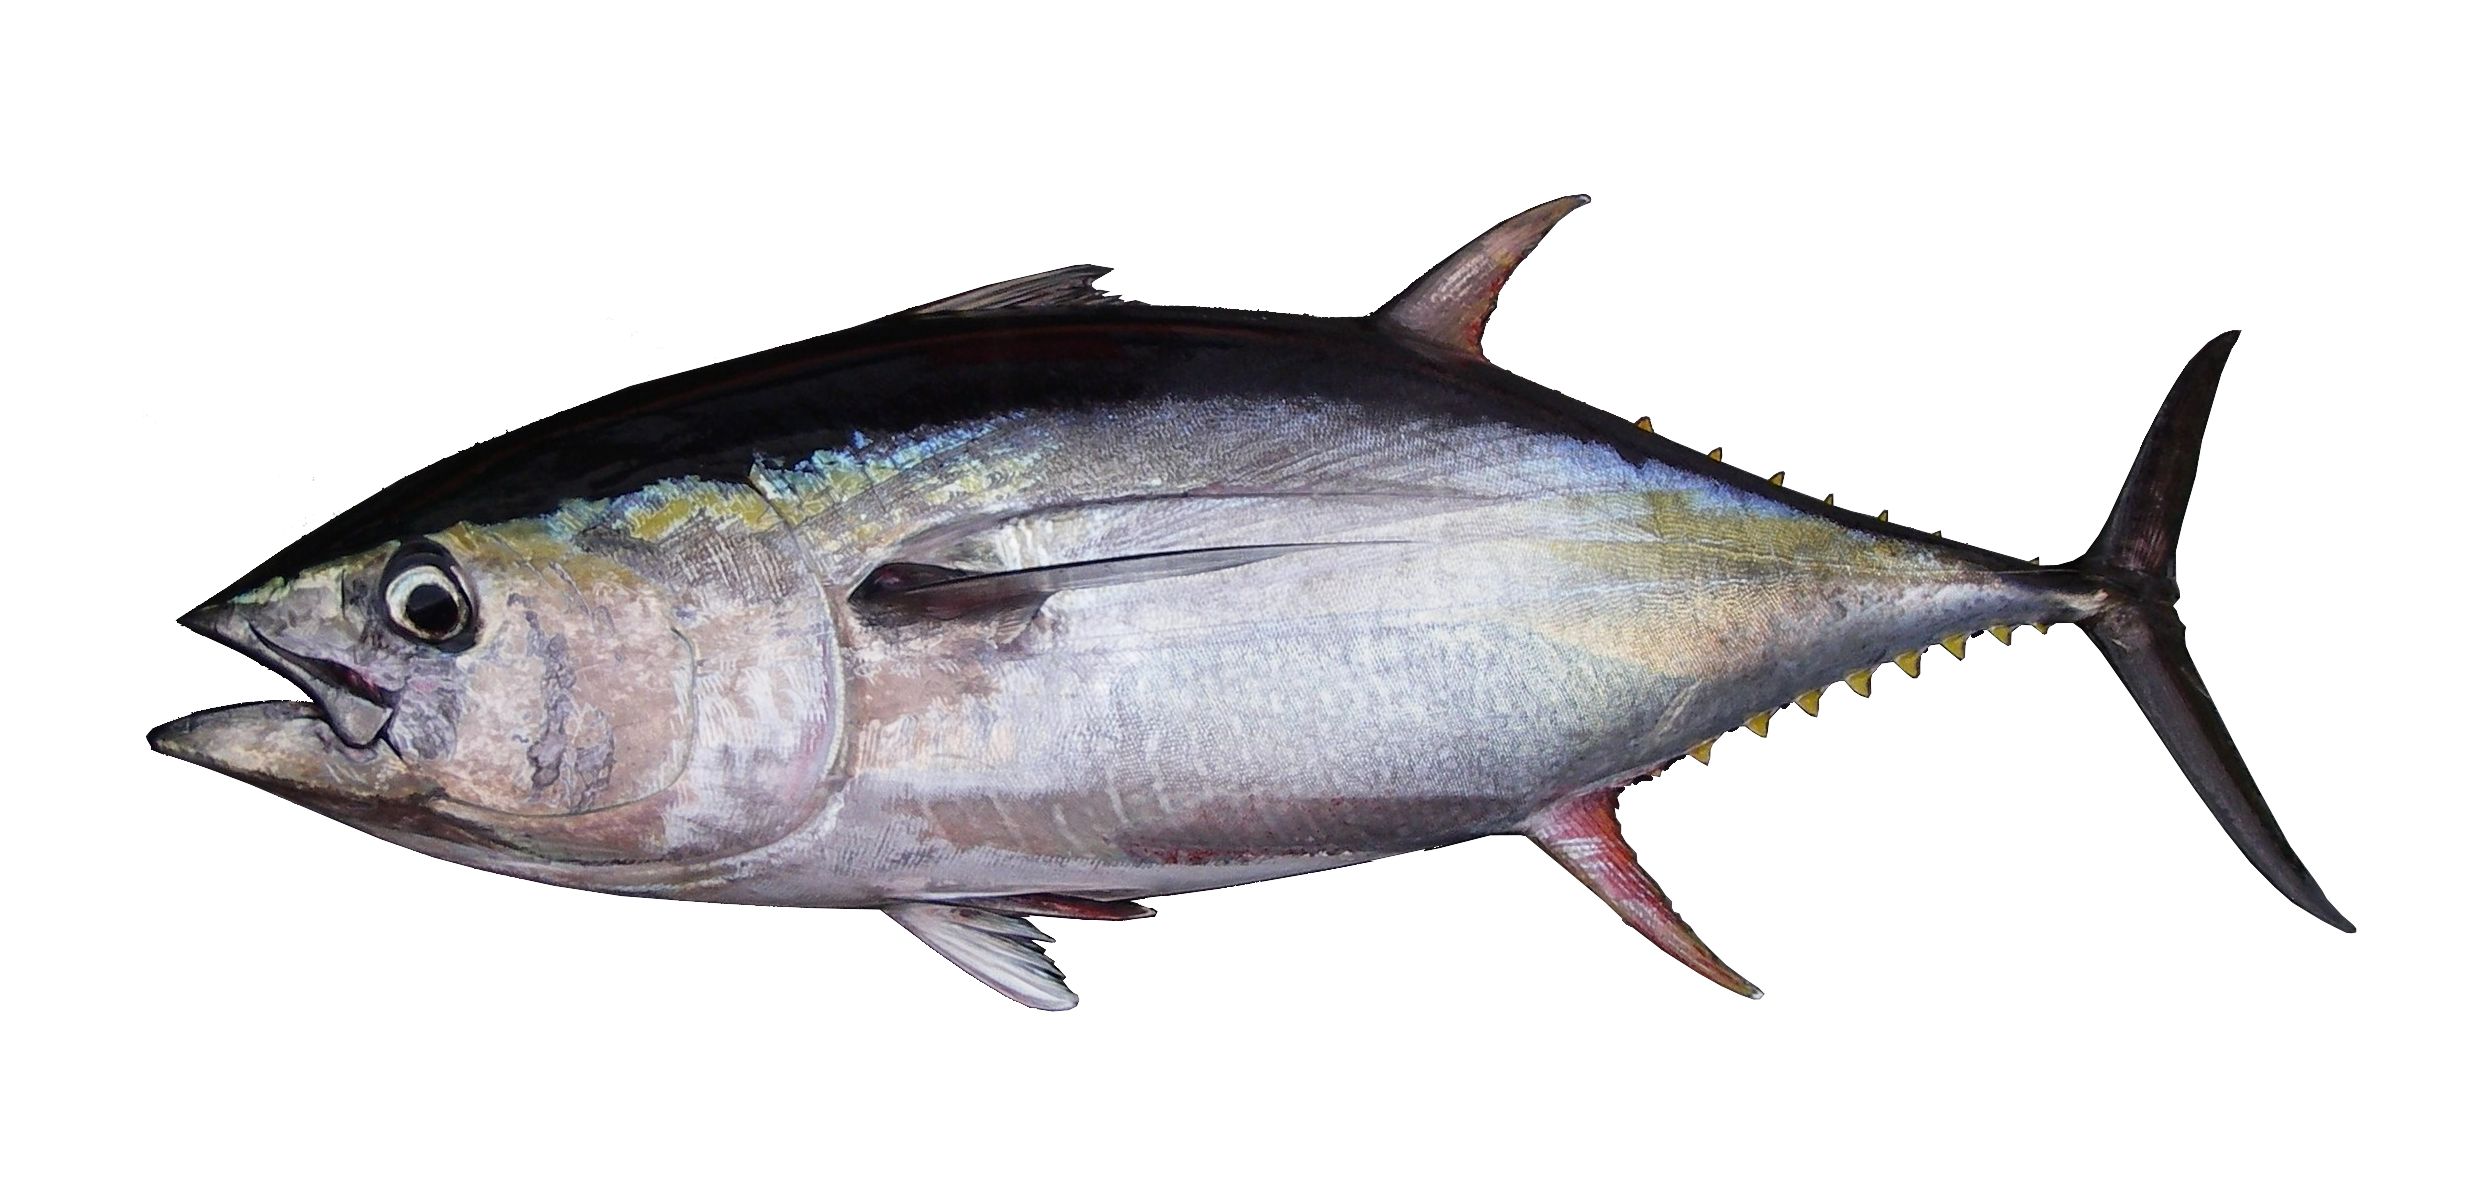 Indian tuna fish images galleries for Tuna fish can